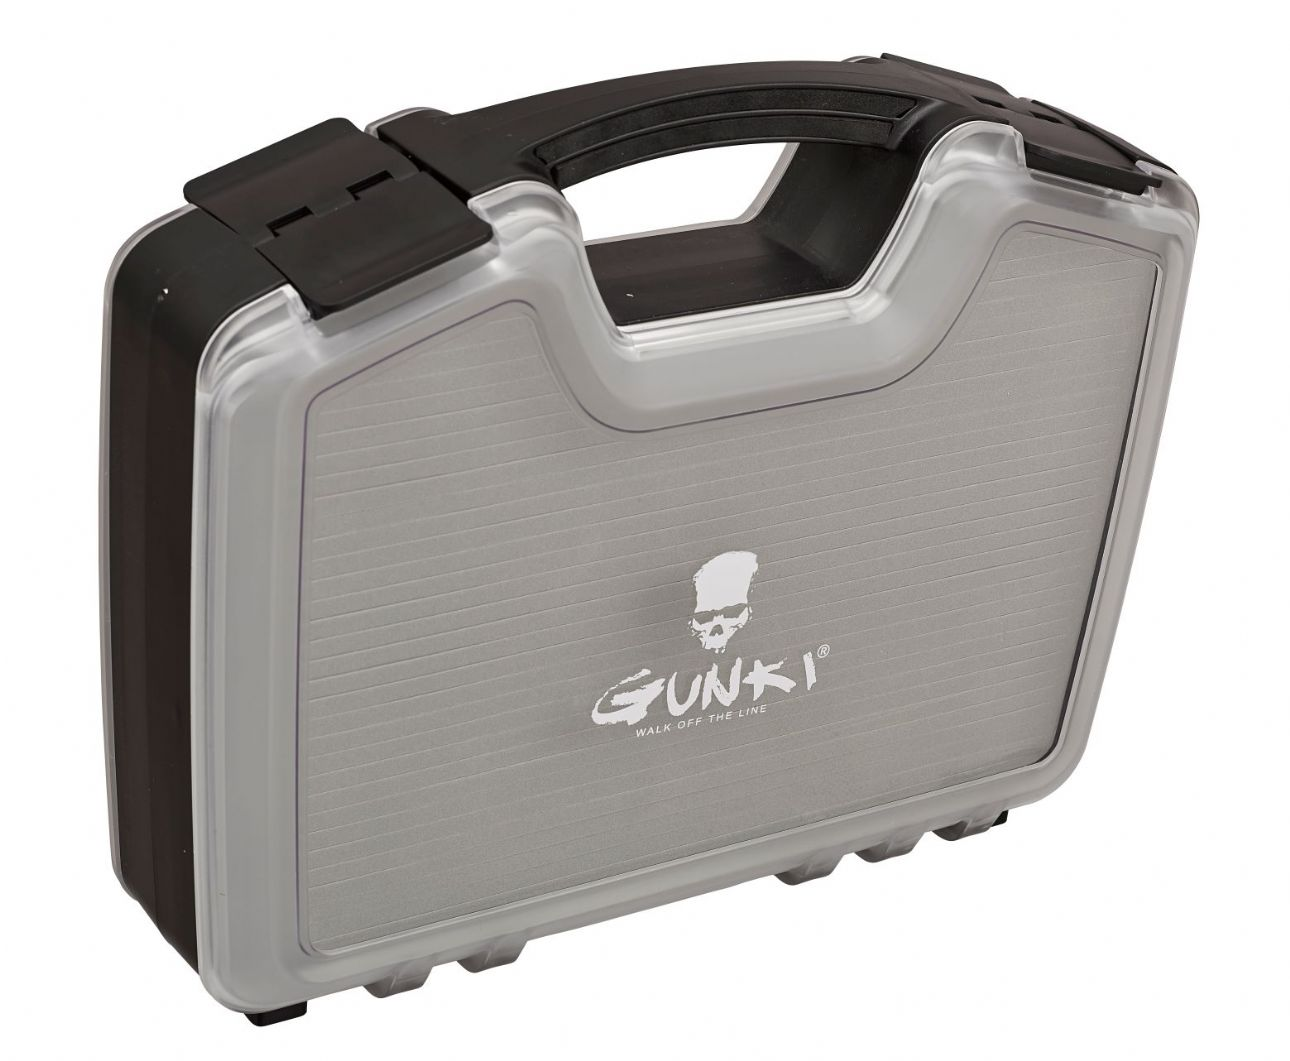 Gunki Fix Hook Box Large